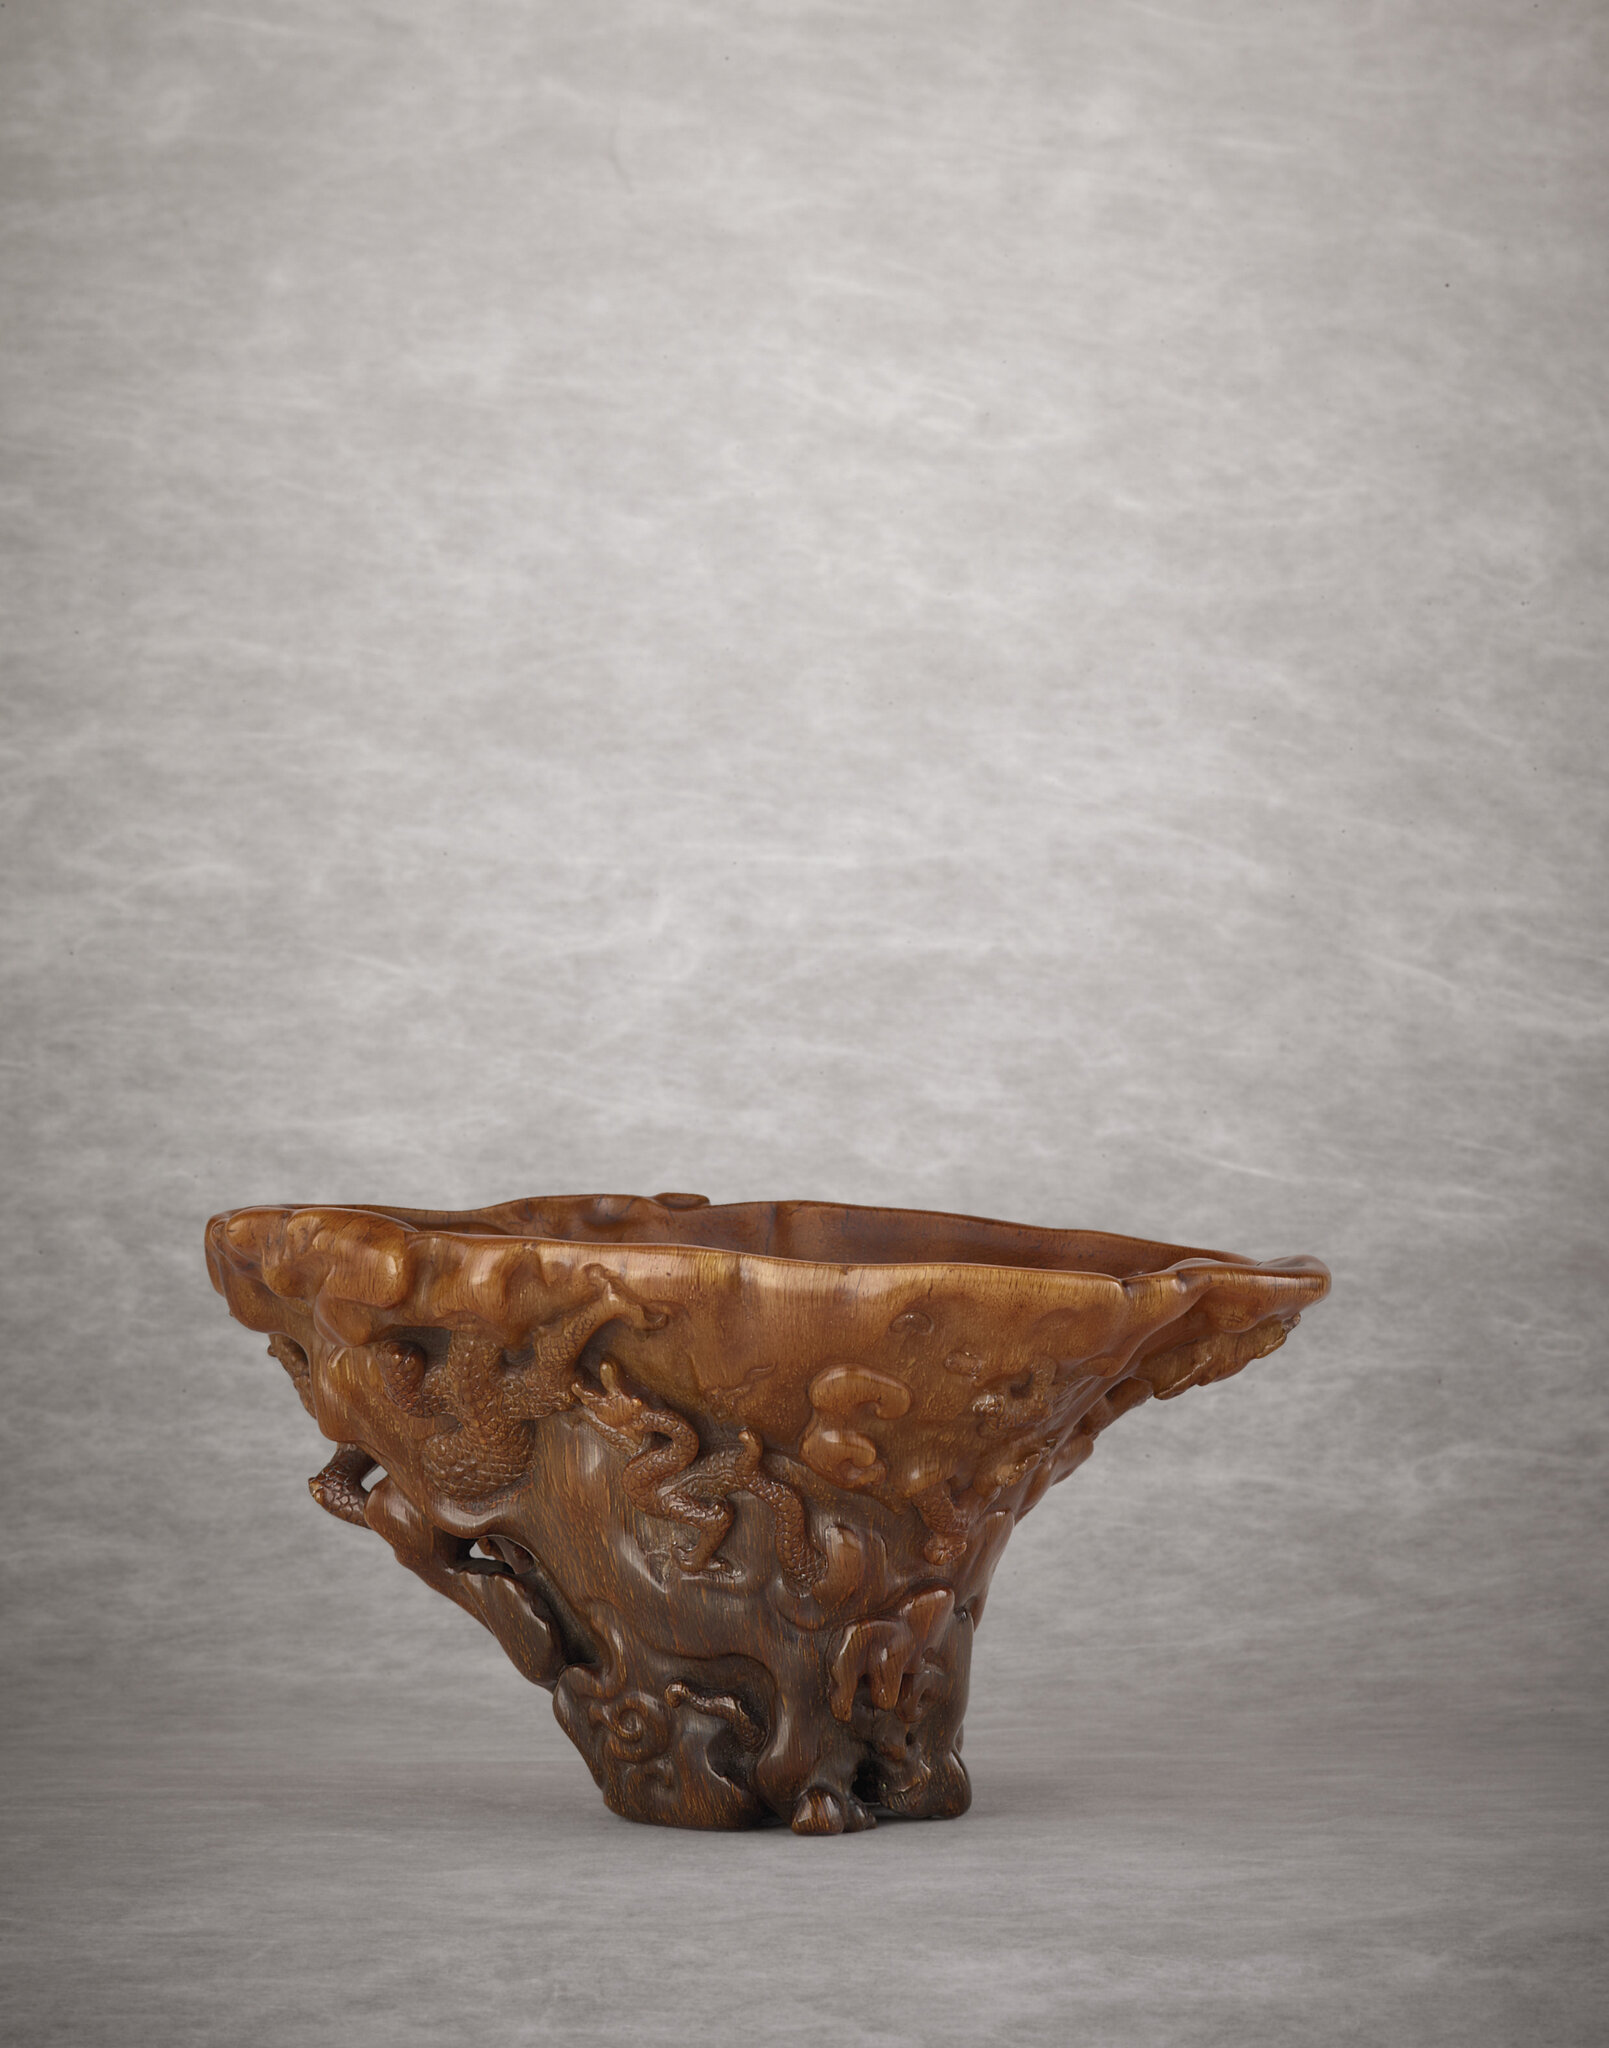 2011_HGK_02893_2907_001(a_rare_and_superbly_carved_rhinoceros_horn_dragon_libation_cup_qing_dy)